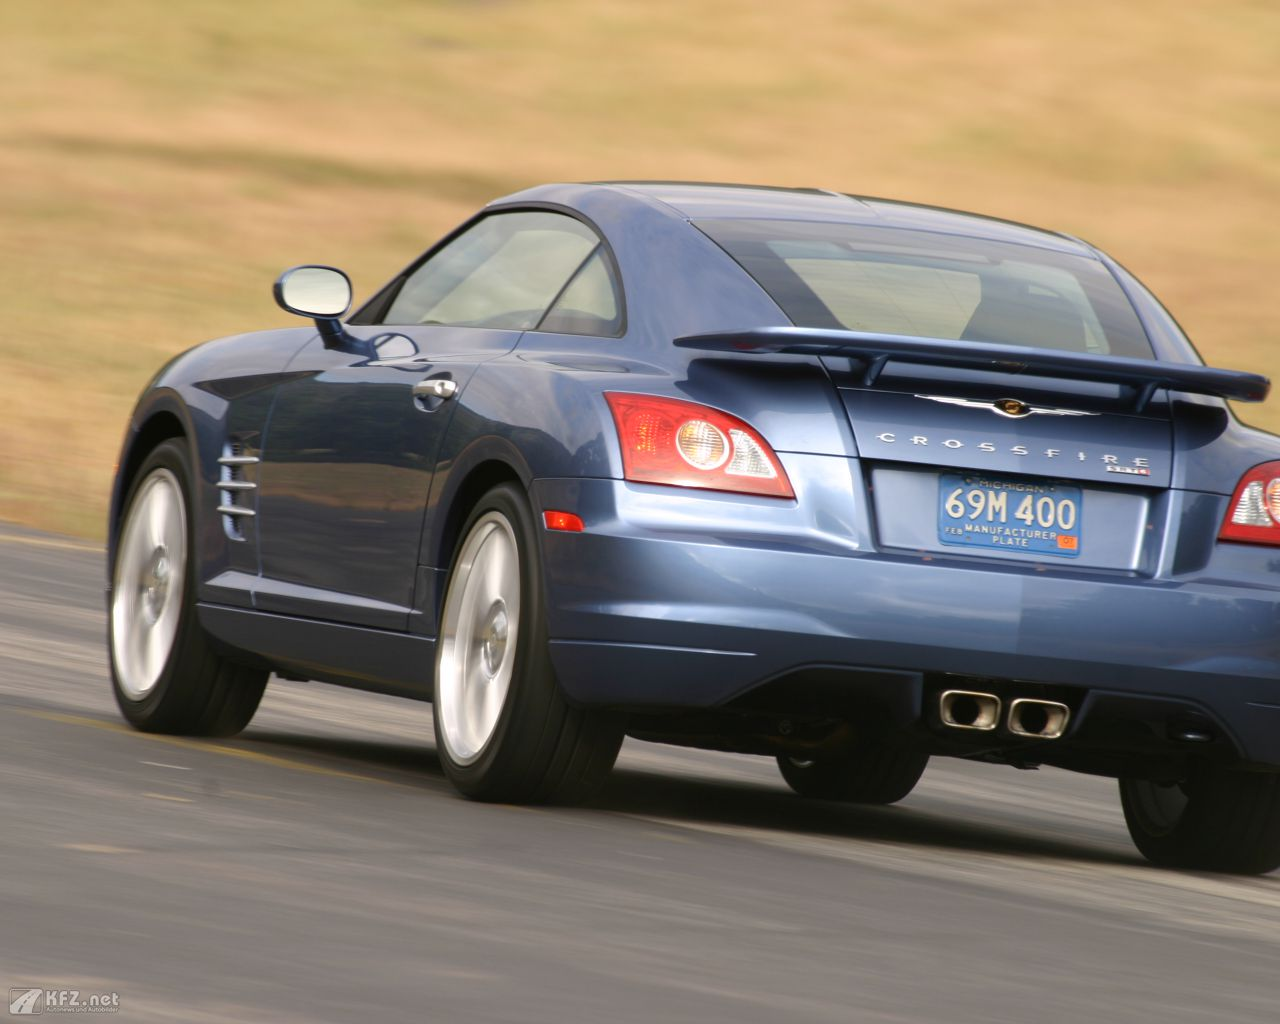 chrysler-crossfire-1280x1024-8